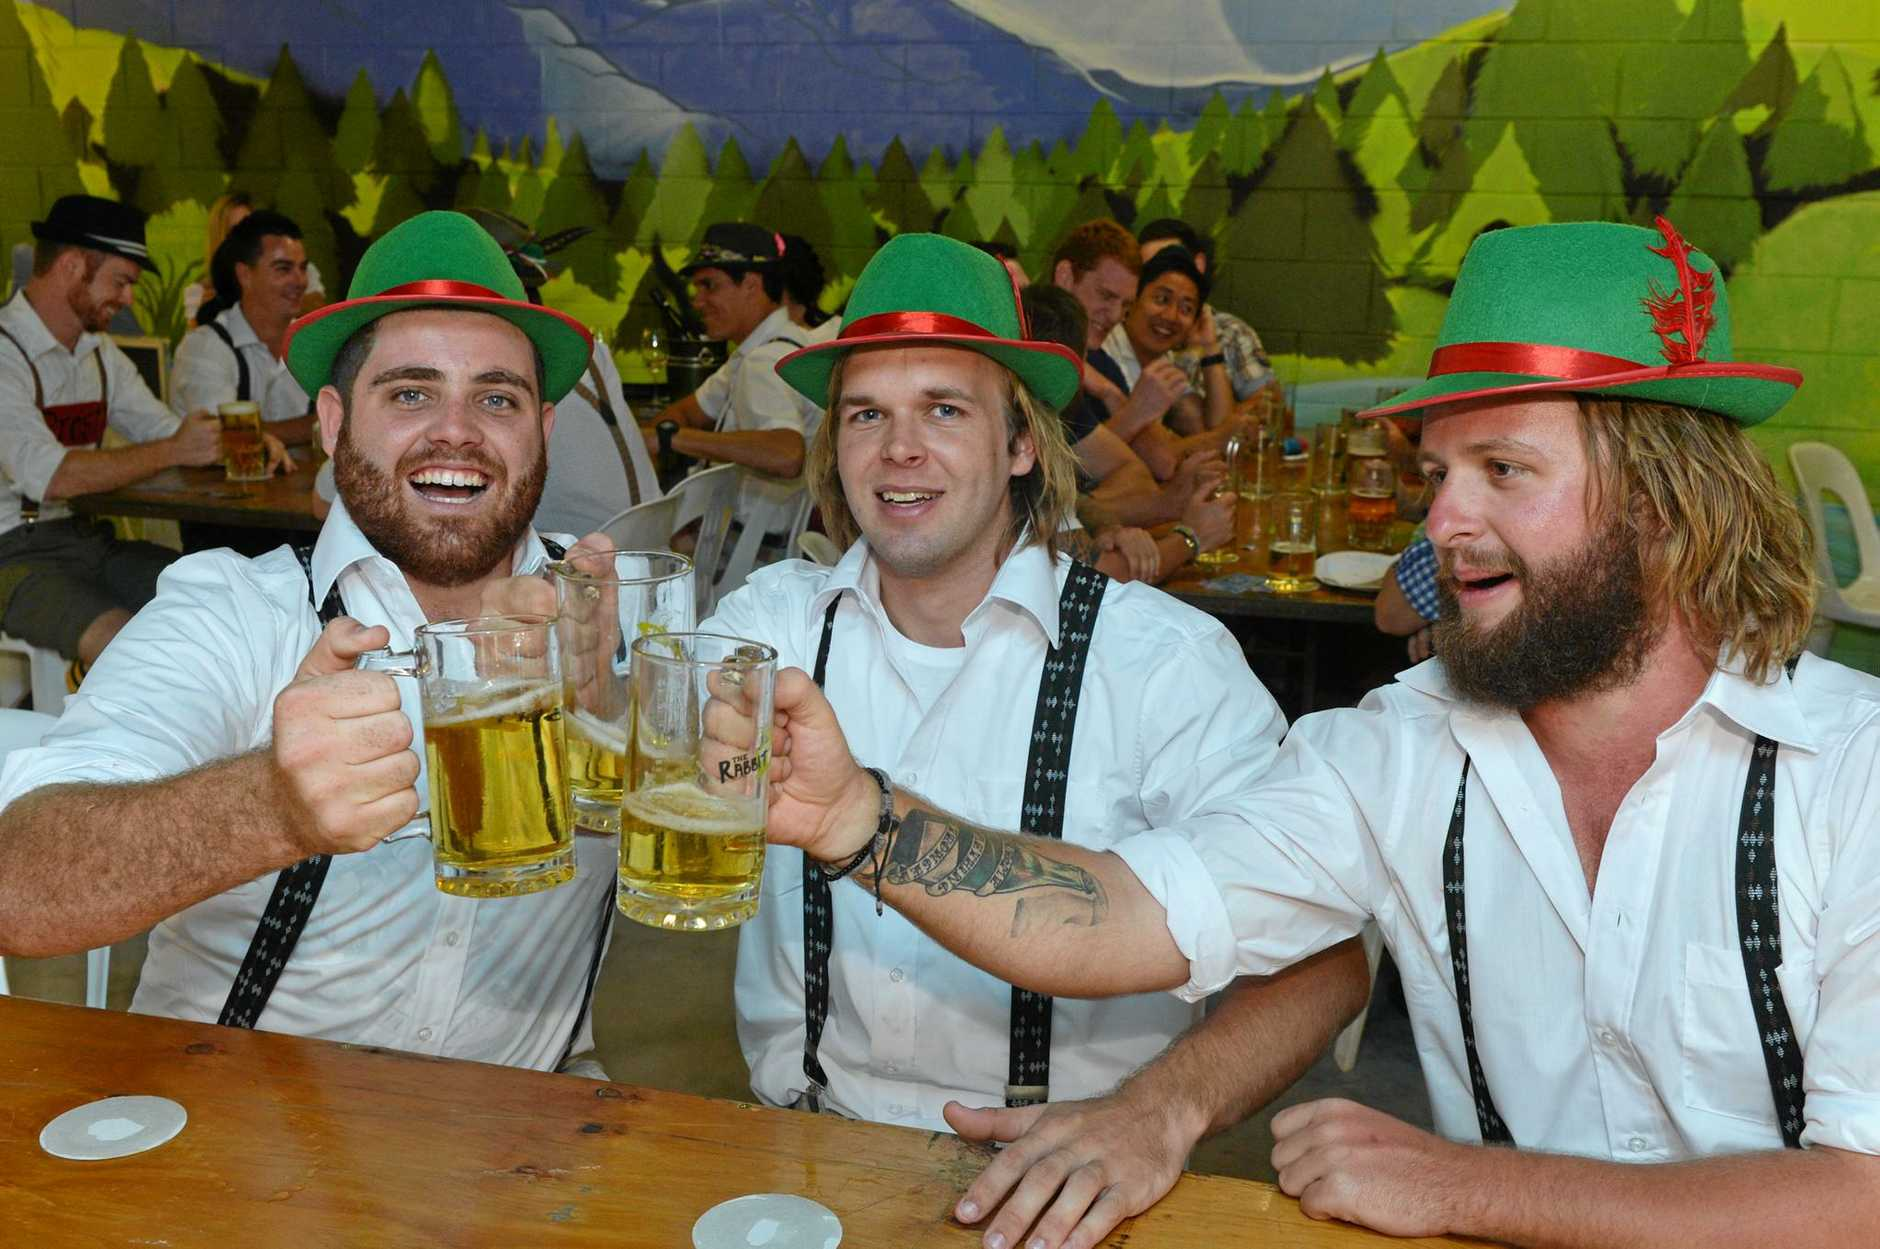 Matt Vella, Michael Rhodes and Chris Nichols adopted Gerrman accents and were happy to catch up with friends at Oktoberfest celebrations at Mackay Grande Suites in 2013.